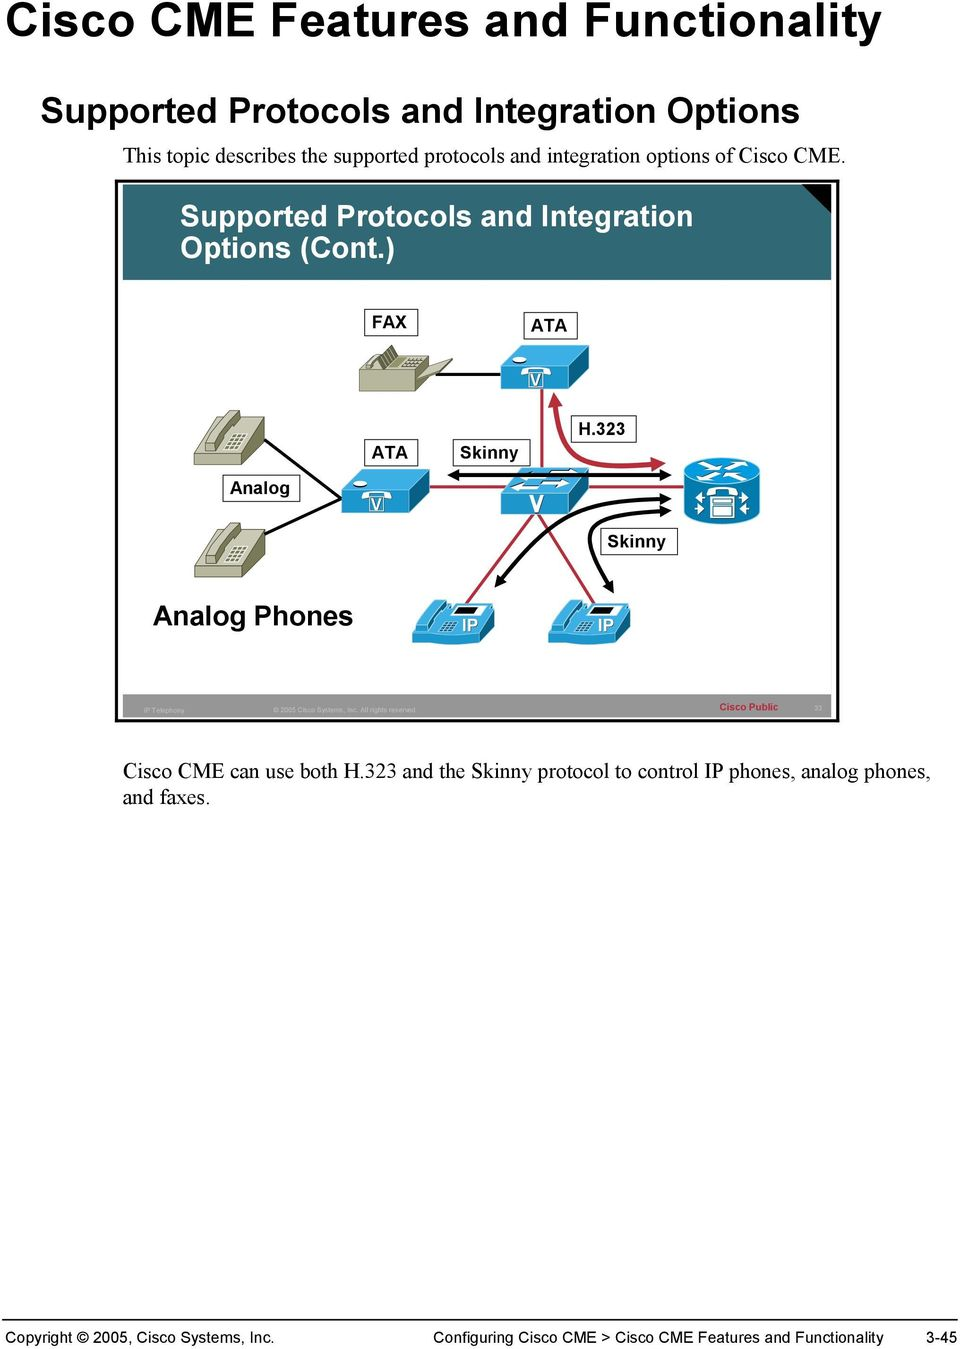 Cisco CME Features and Functionality - PDF